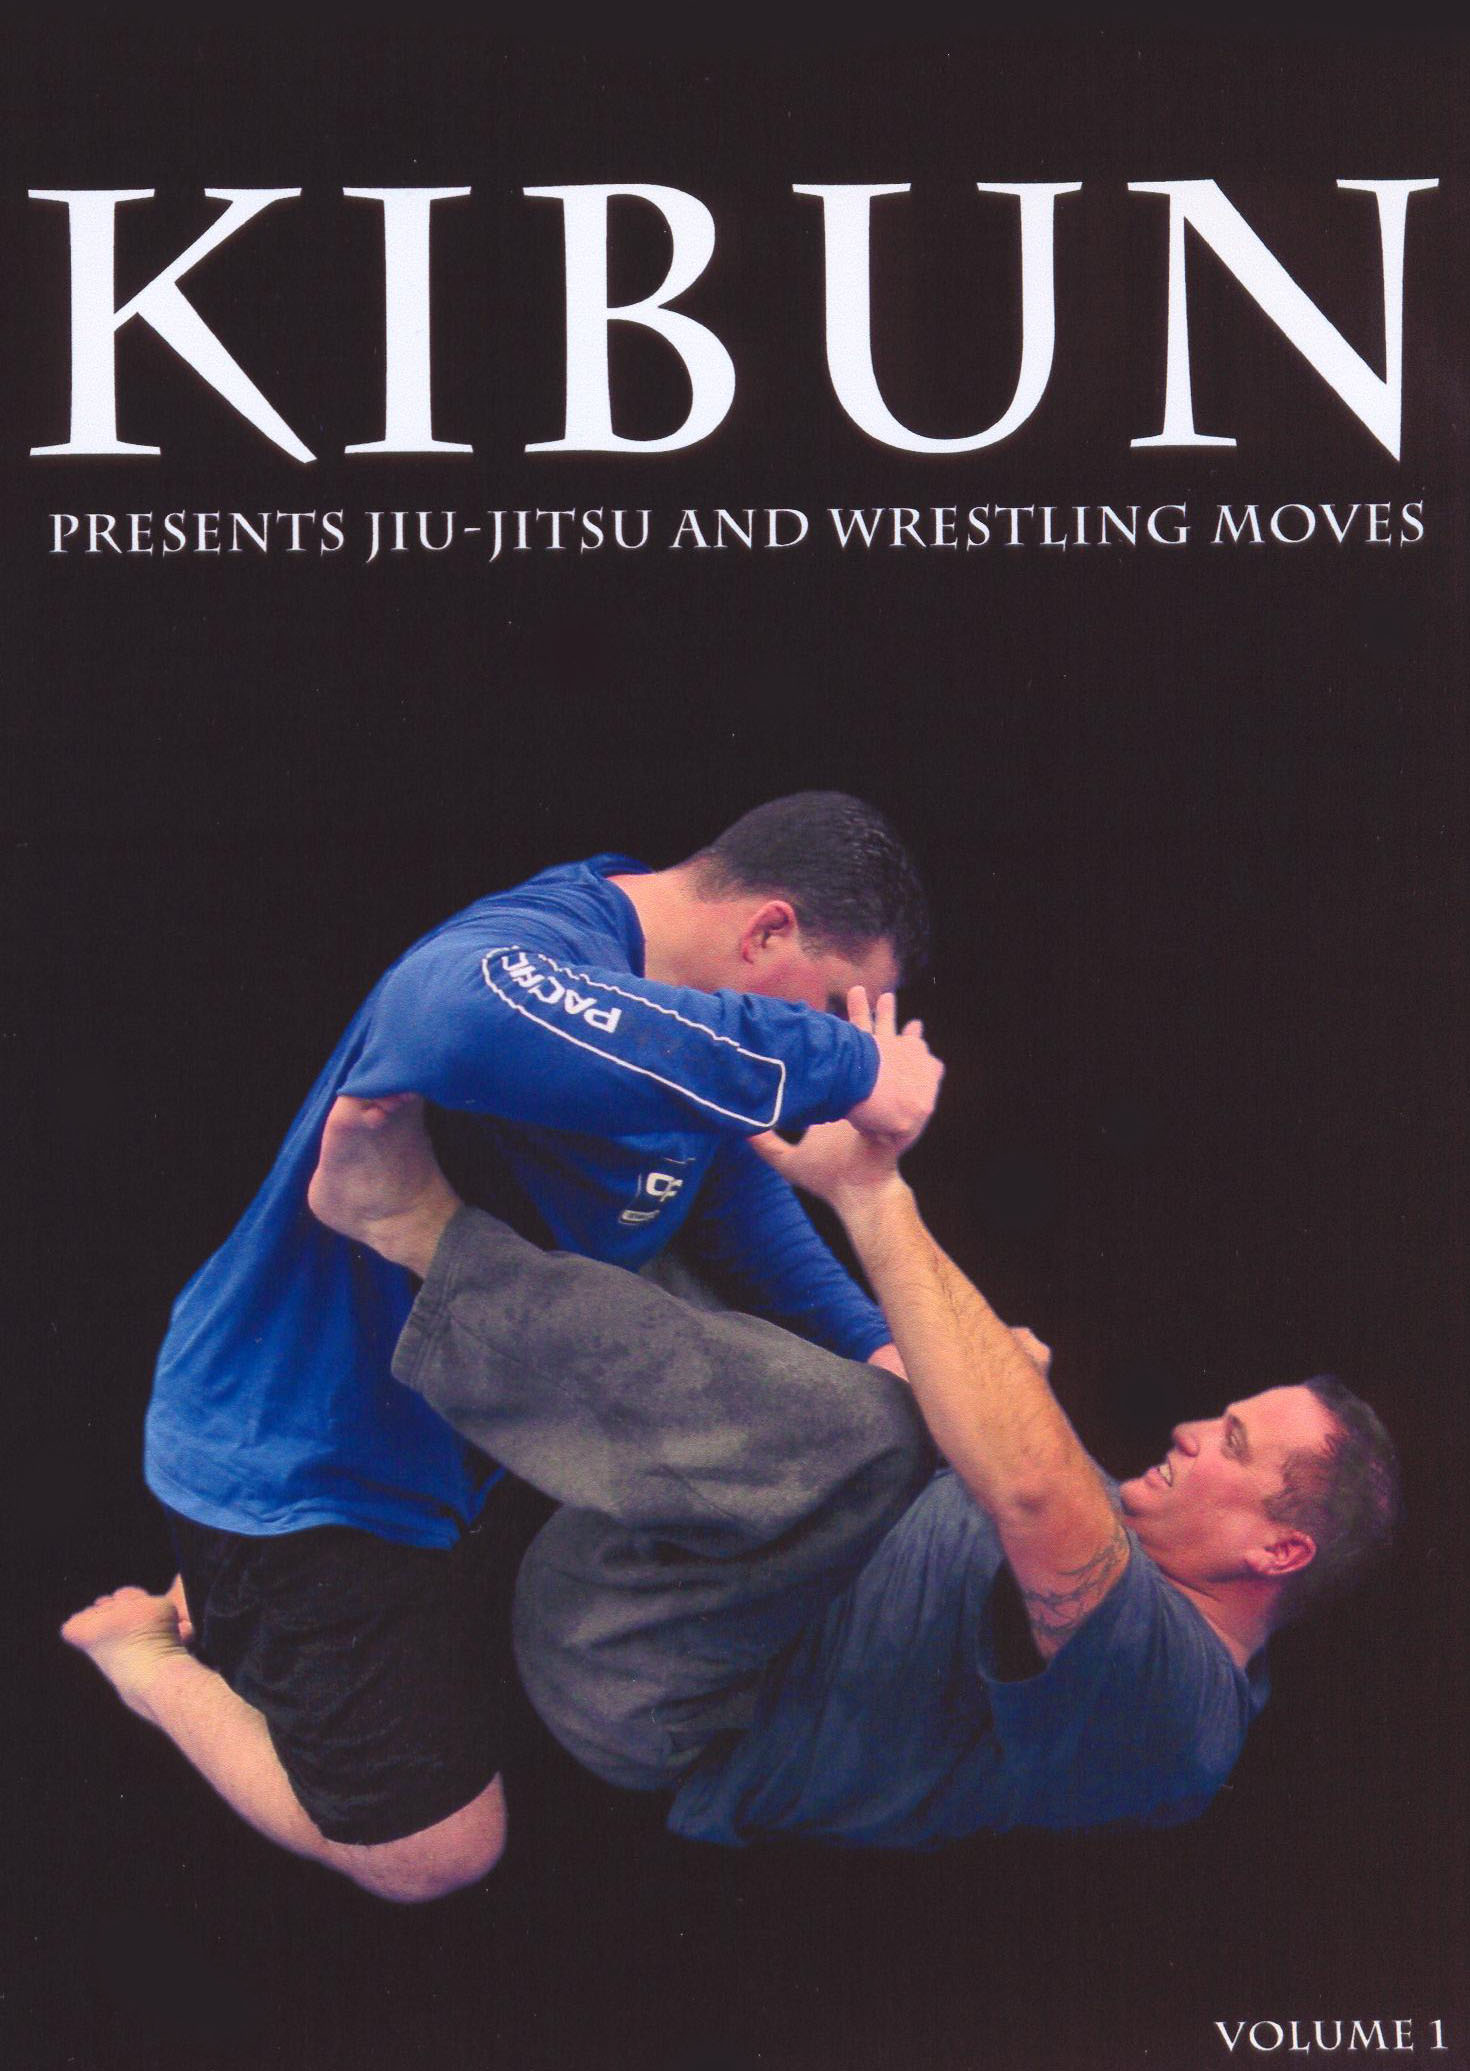 Kibun: Jiu Jitsu and Wrestling Moves, Vol. 1